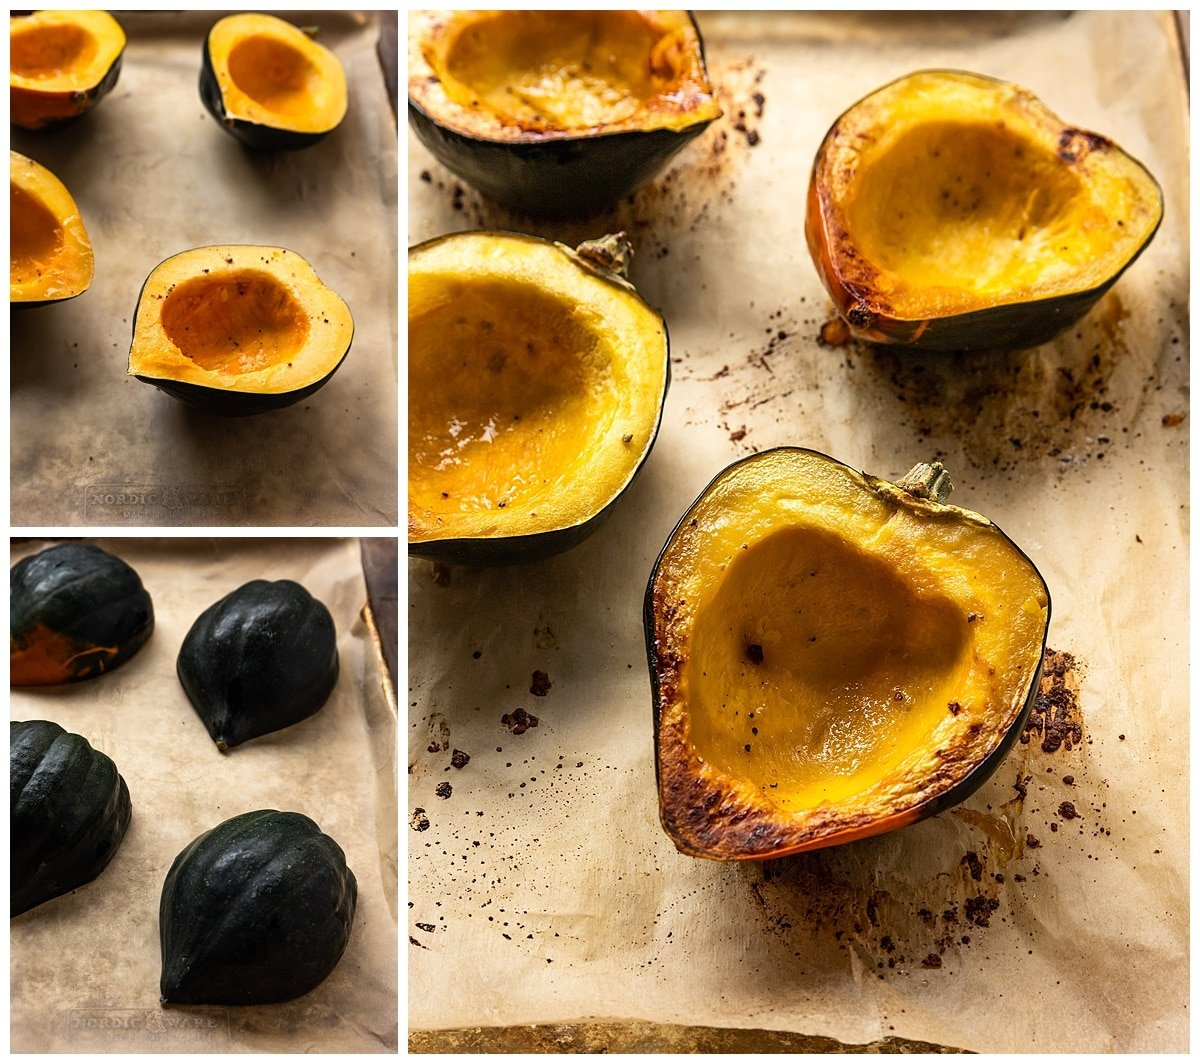 three pictures- two of acorn squash sliced in half before being baked and the third picture of baked acorn squash